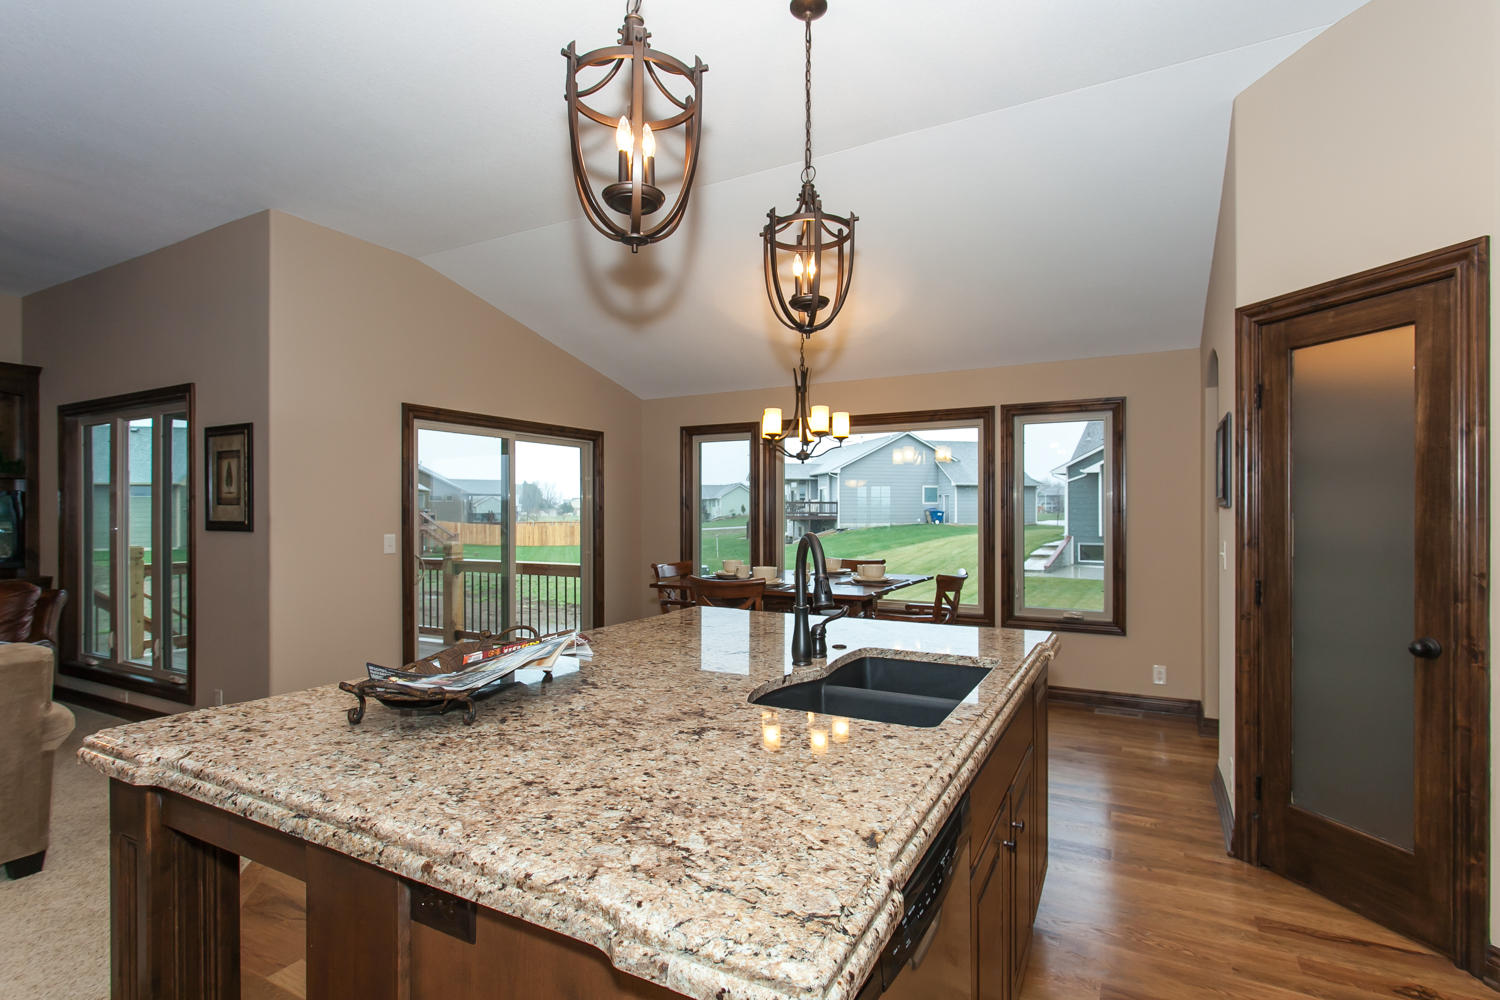 14706 W Valley Hi-large-010-10-Kitchen and Dining-1500x1000-72dpi.jpg